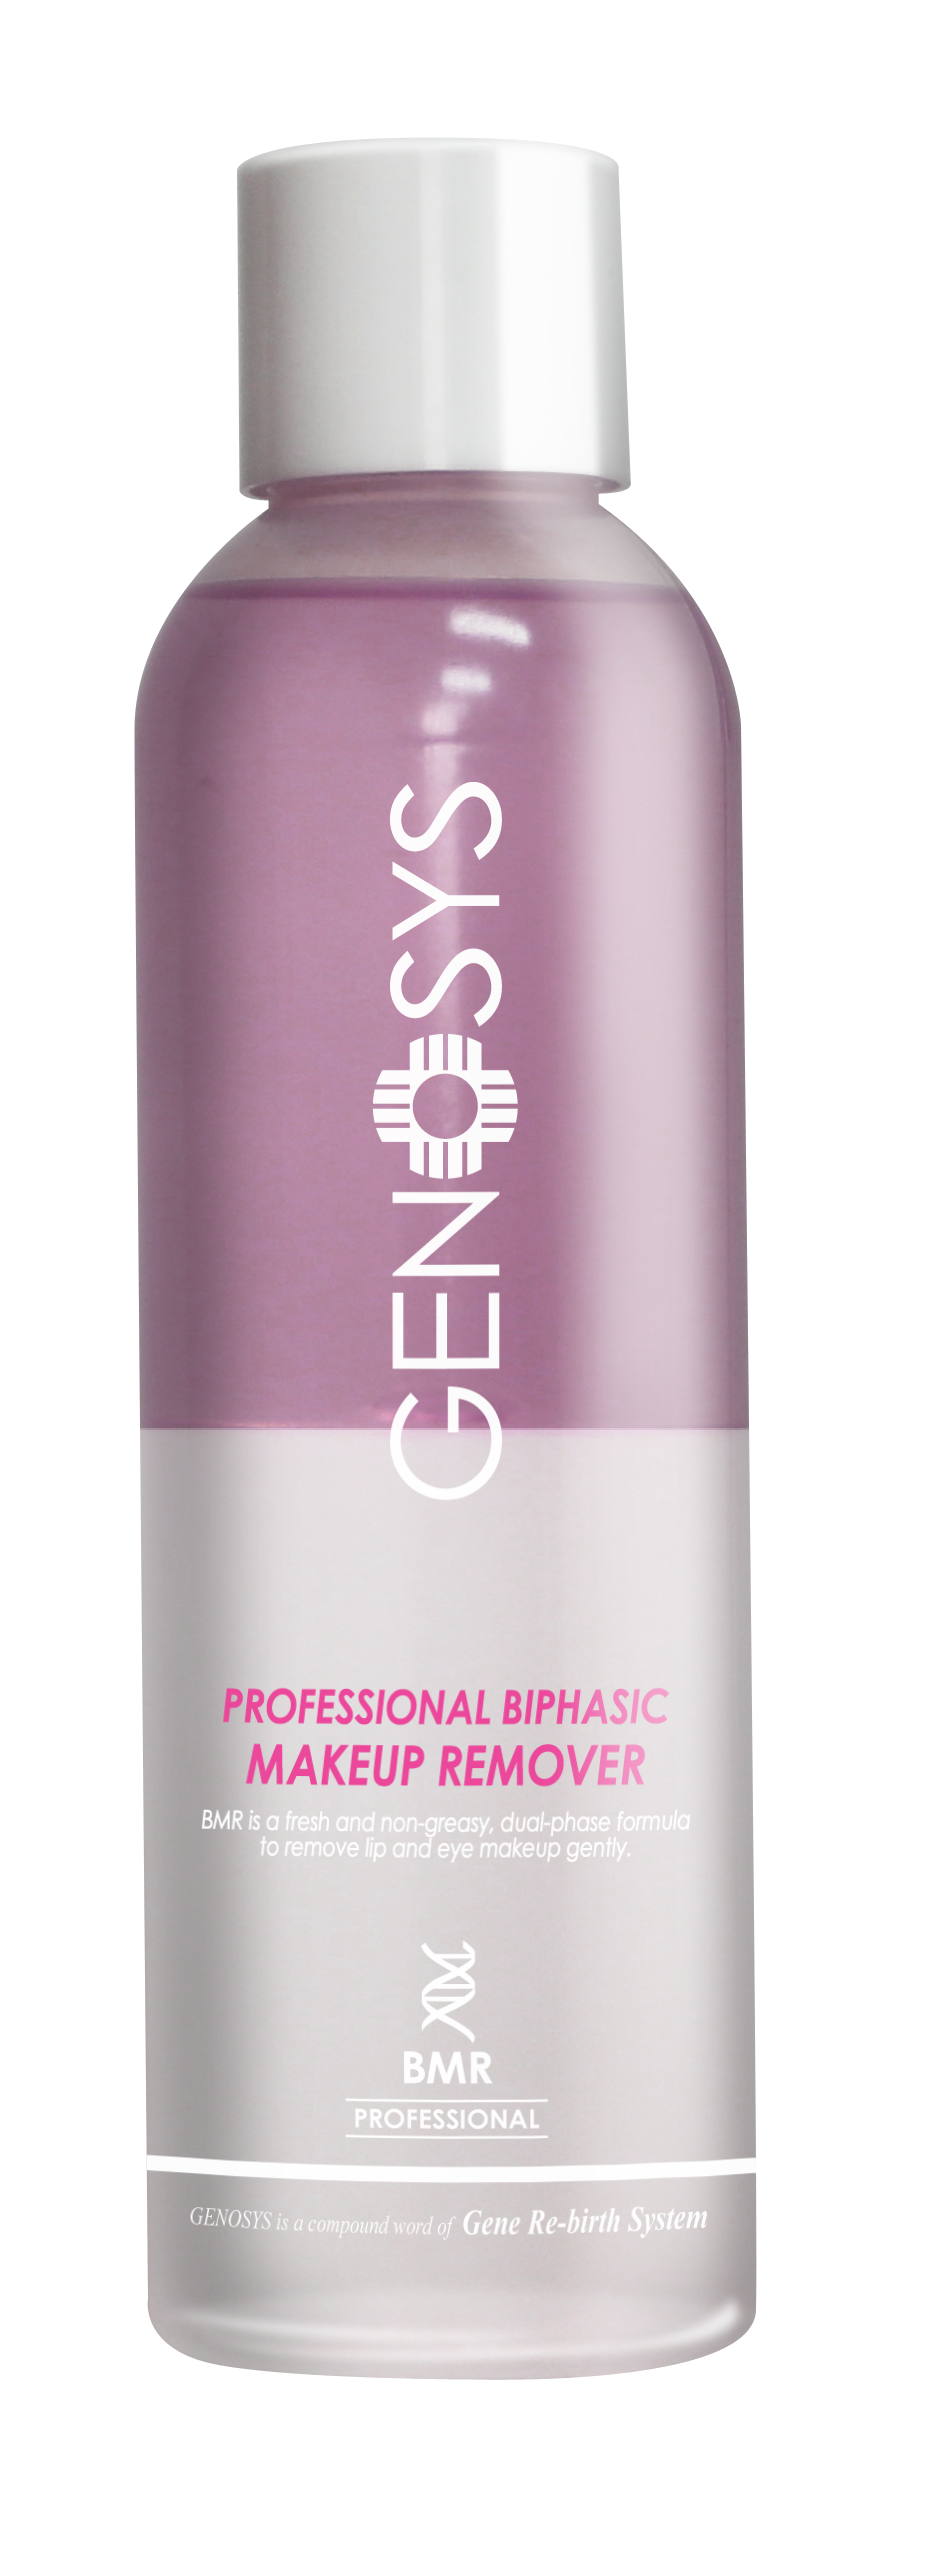 BIPHASIC-MAKEUP-REMOVER